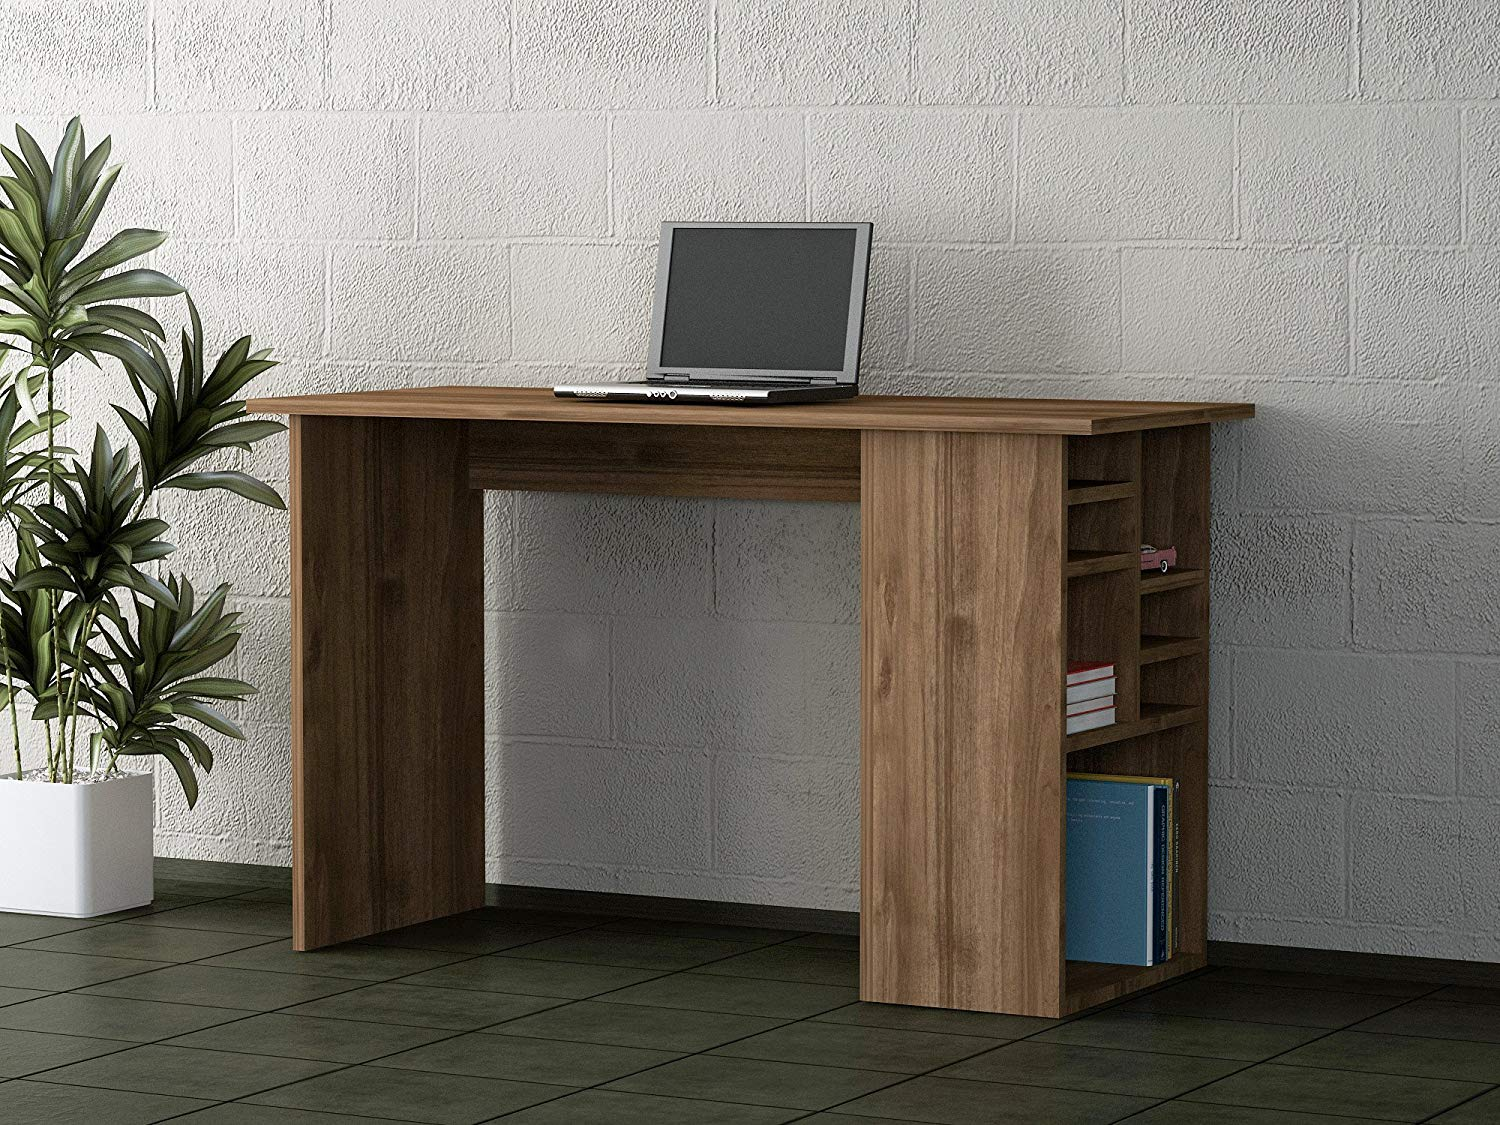 Writing Computer Desk Modern & Simple Dark Brown Simple Useful Functional Modern Stylish Study Desk Industrial Style Study & Laptop Table Home, Office, Living Room, Study Room Walnut